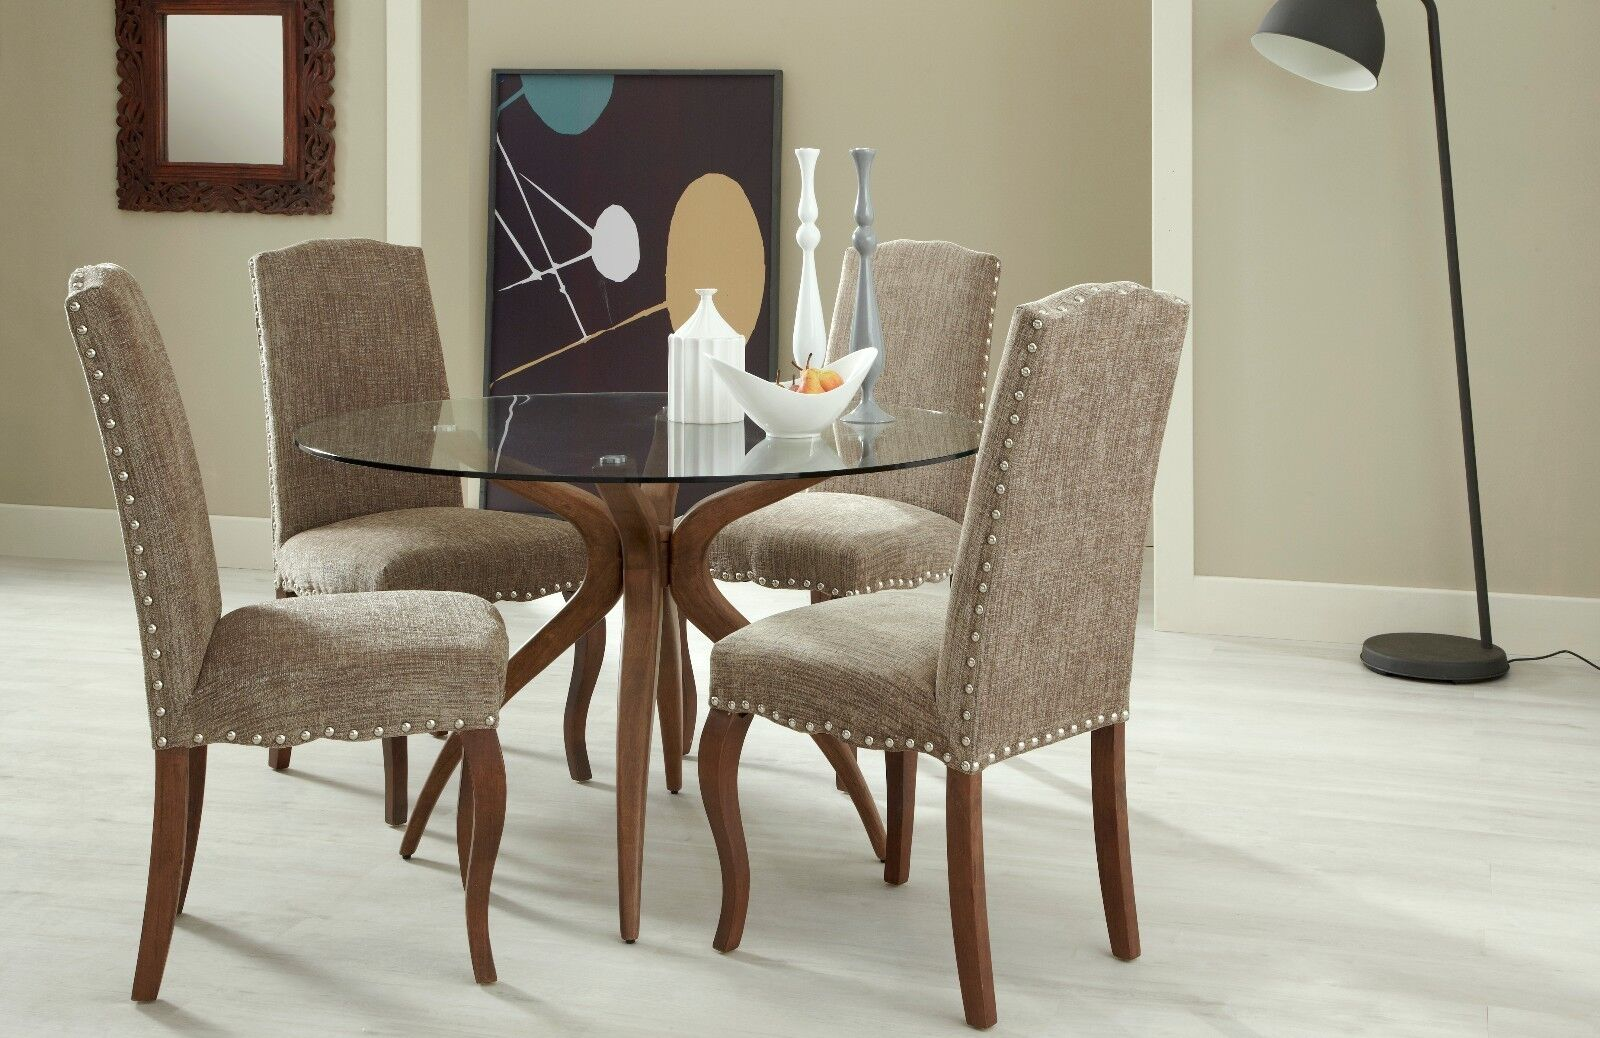 Bramford Round Glass Dining Table And 4 Solid Wood Chairs Quality